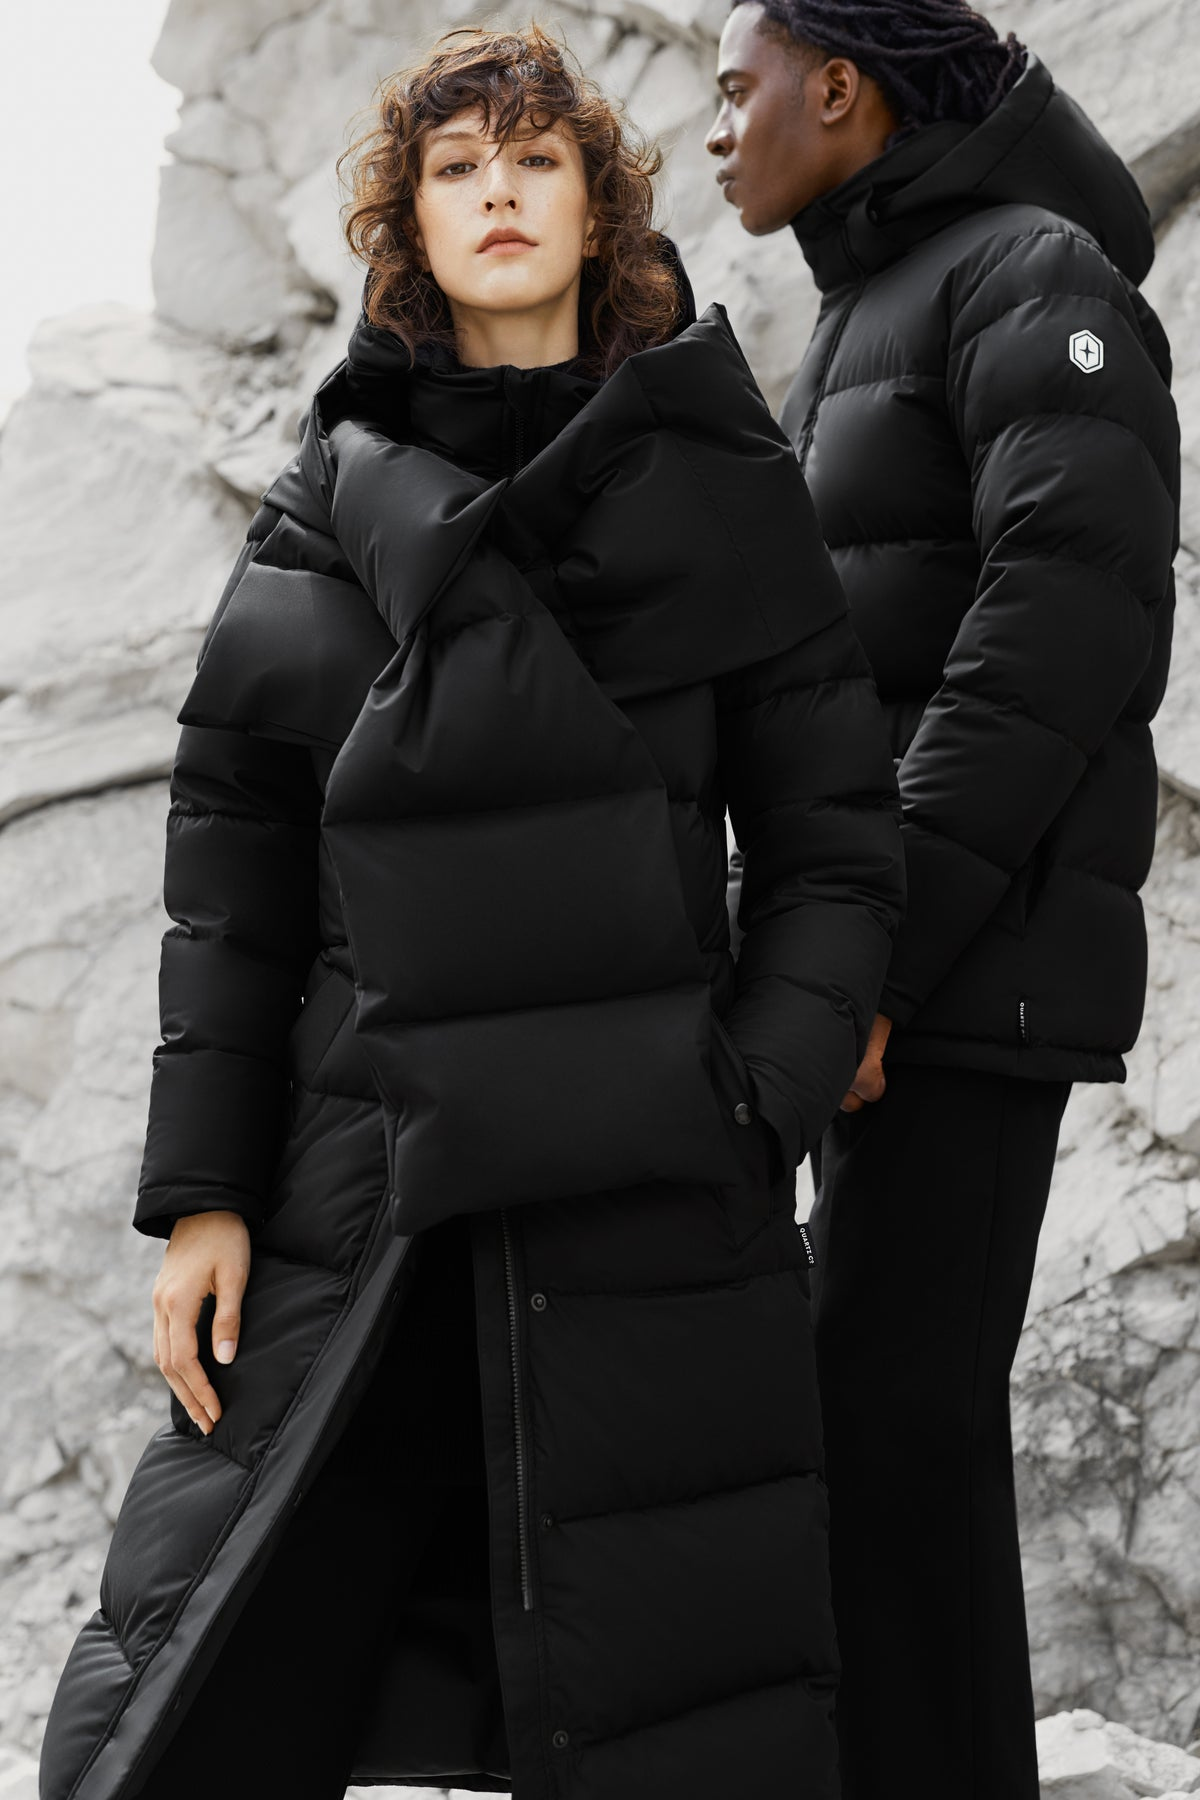 Quartz Co. winter jackets Made in Canada, Jane and Maguire jacket in black color